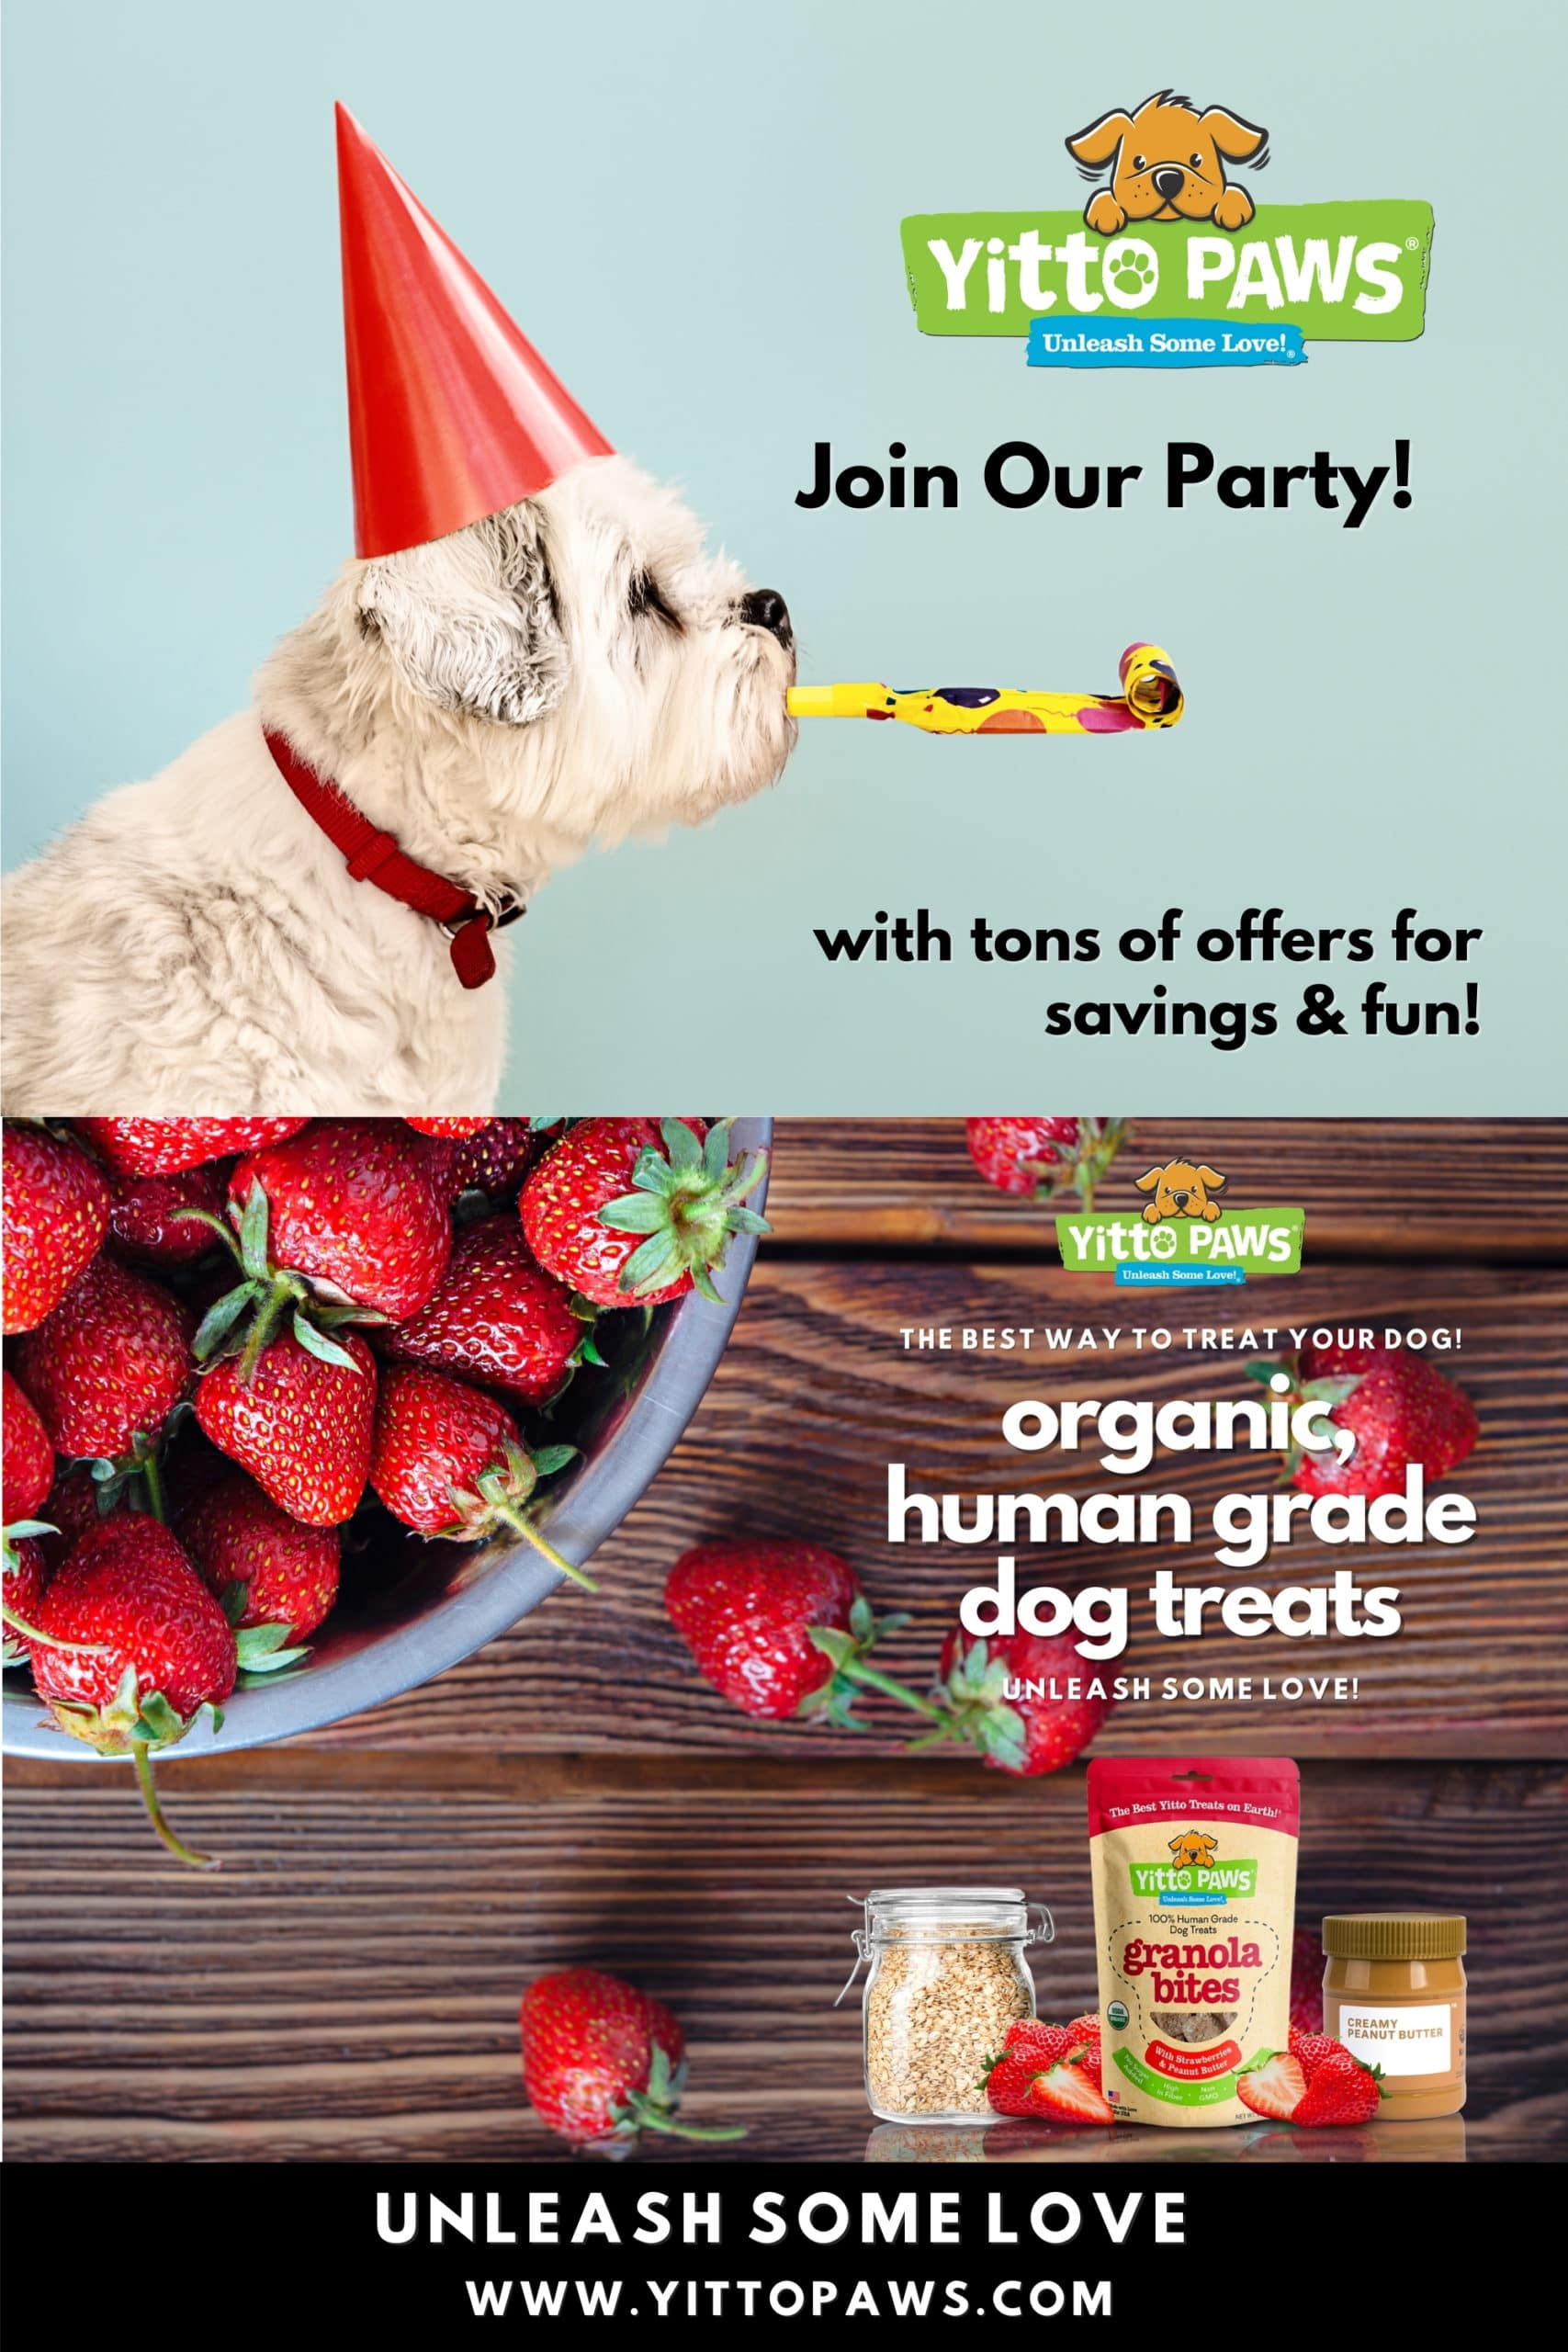 Join our party that's filled with tons of offers for savings & fun!